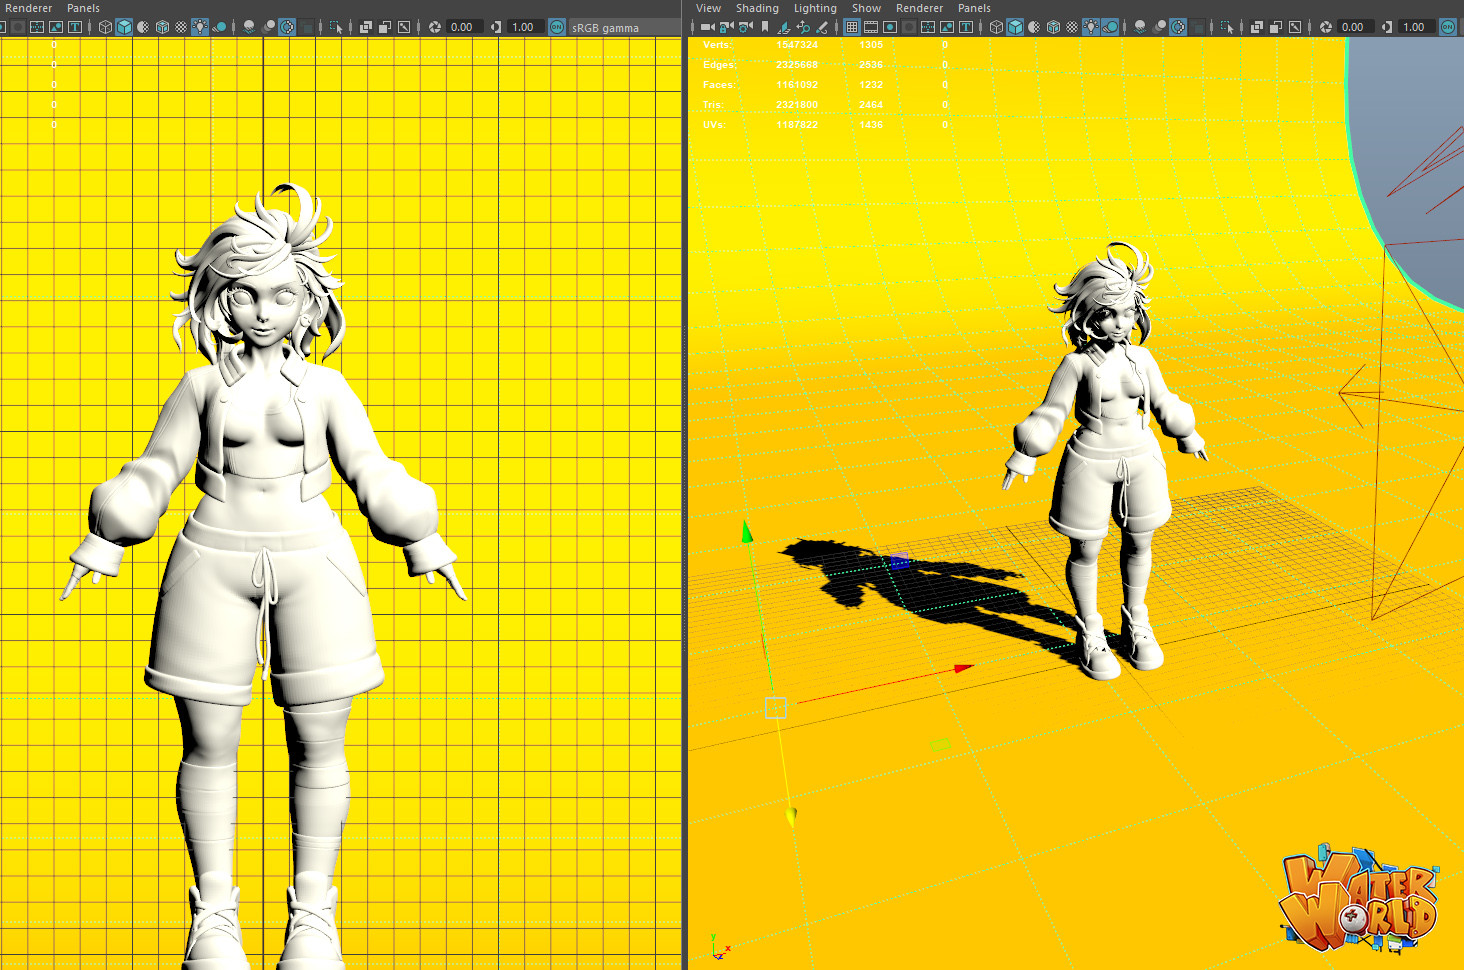 Thunder cloud mee hipoly casualoutfit wip 02